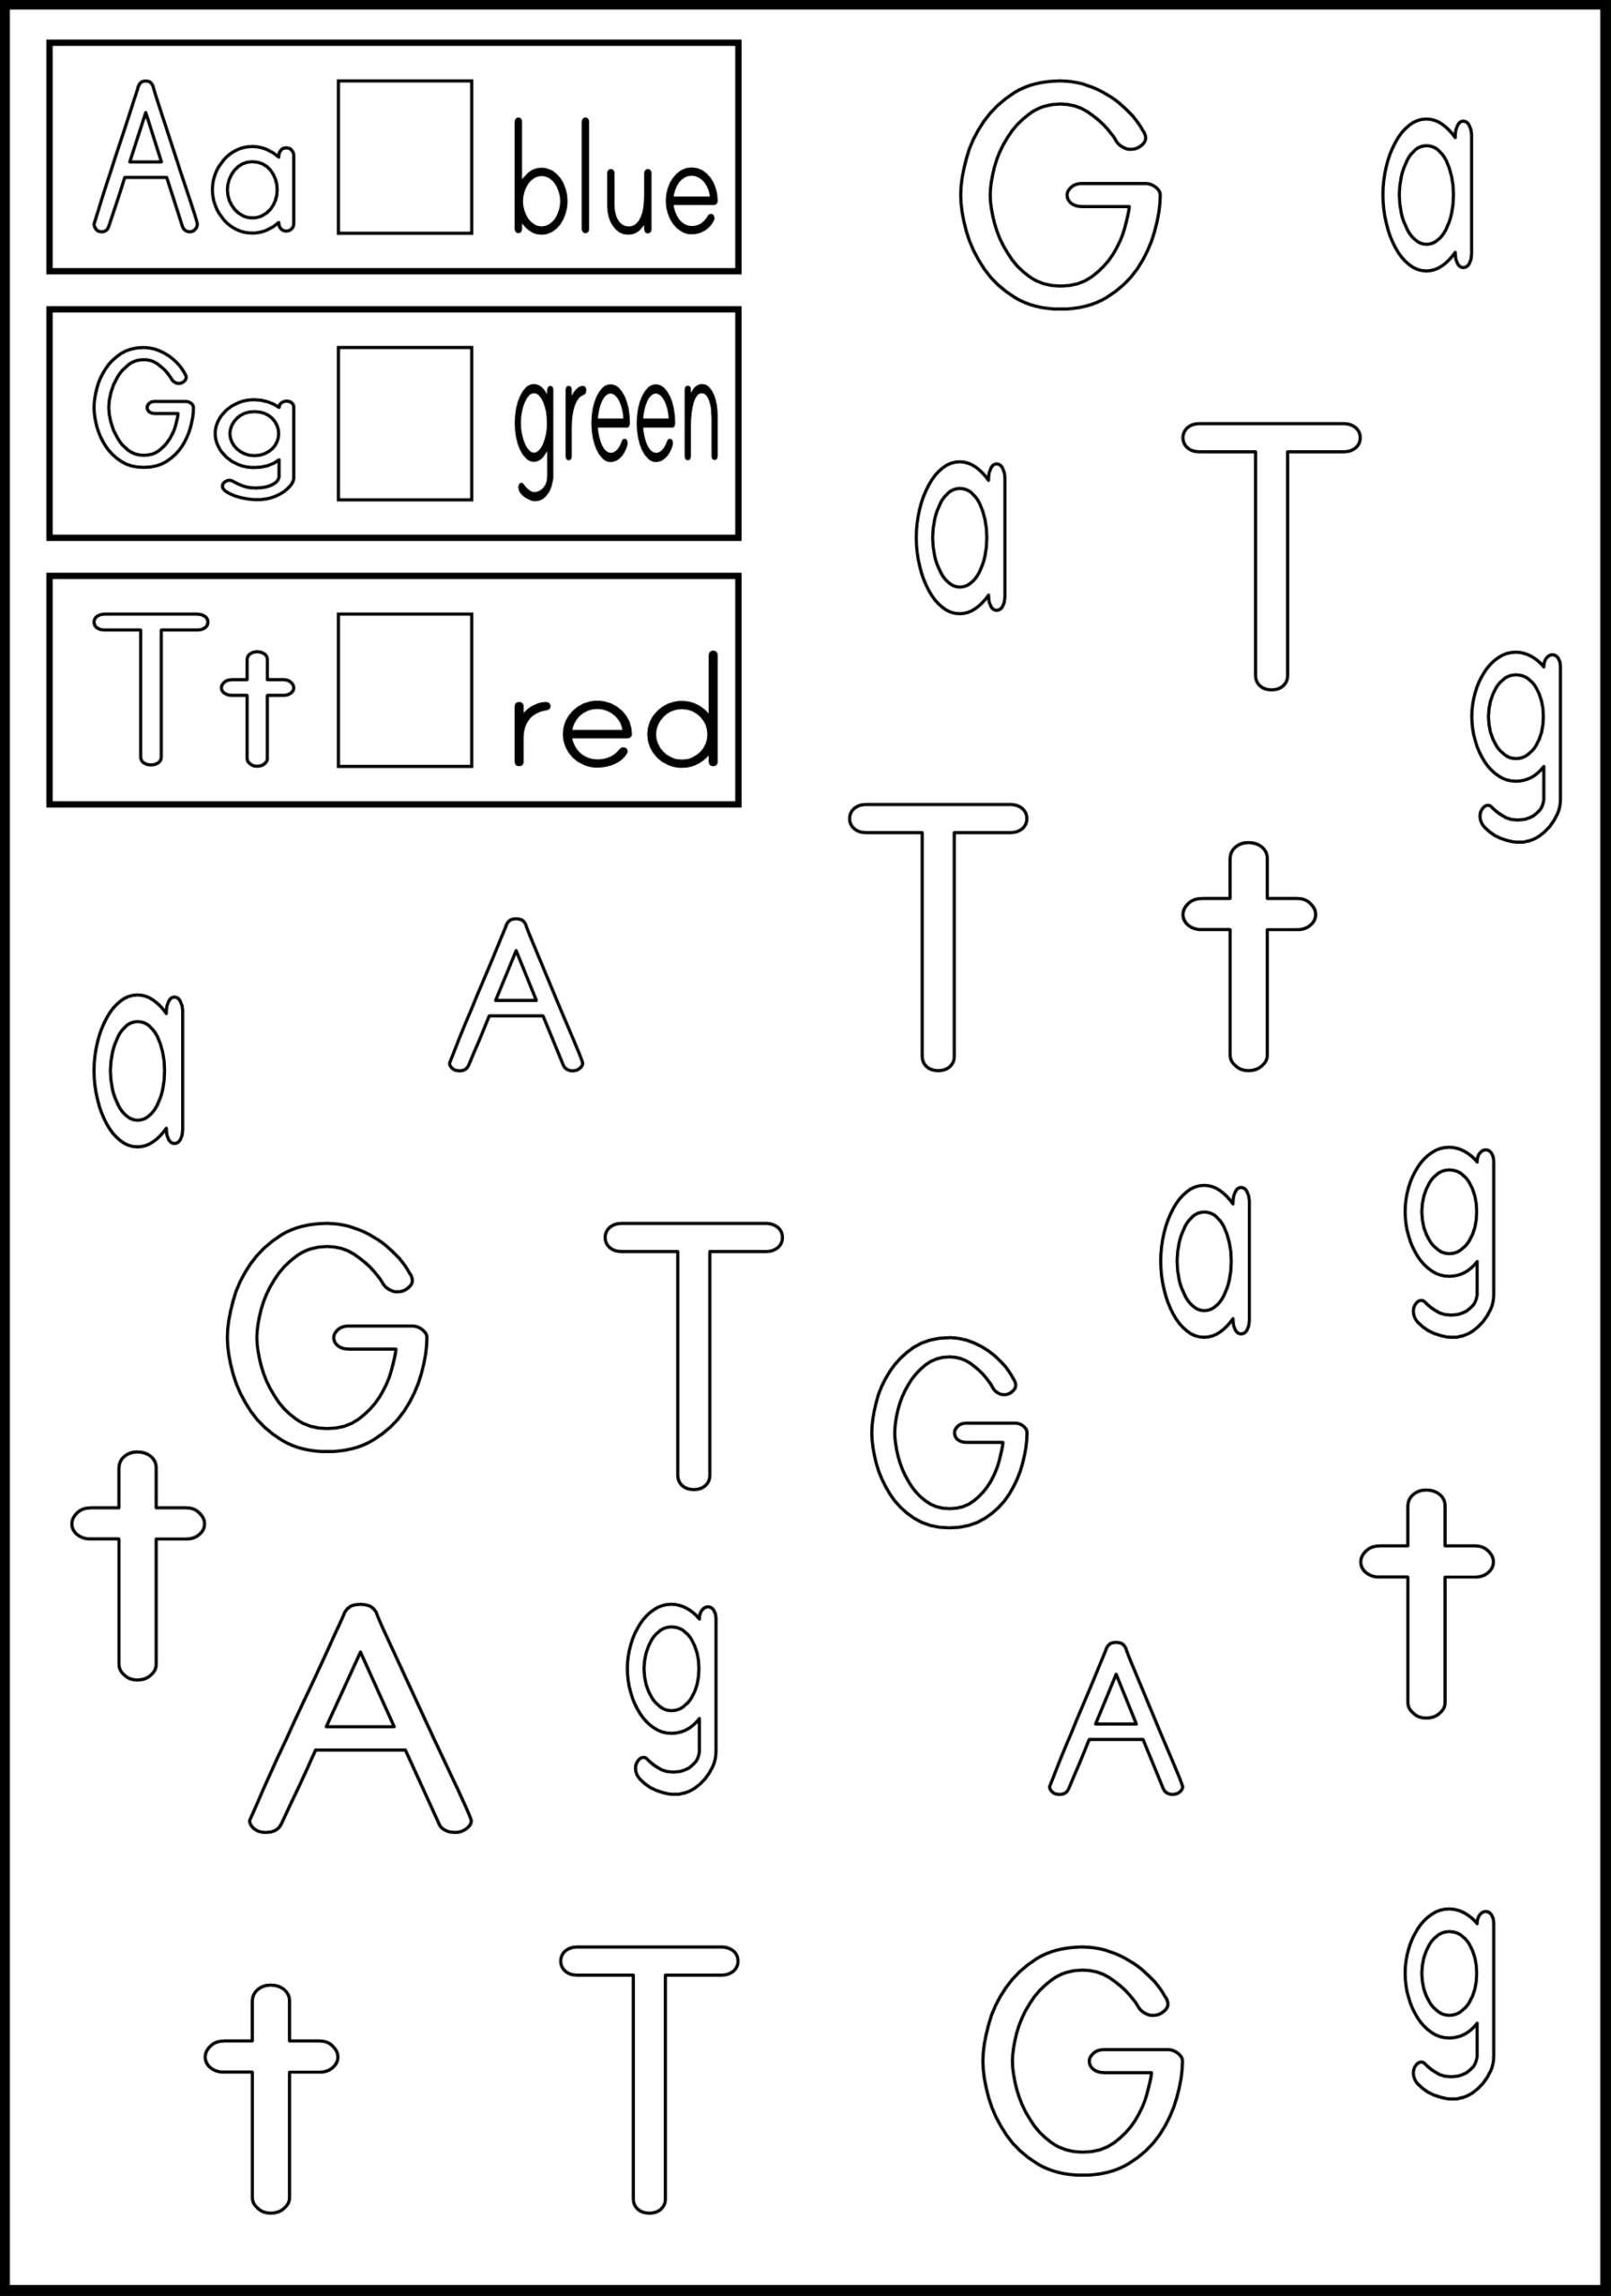 Link To Letter Recognition Worksheets - Color The Boxes Next intended for Alphabet Recognition Worksheets For Kindergarten